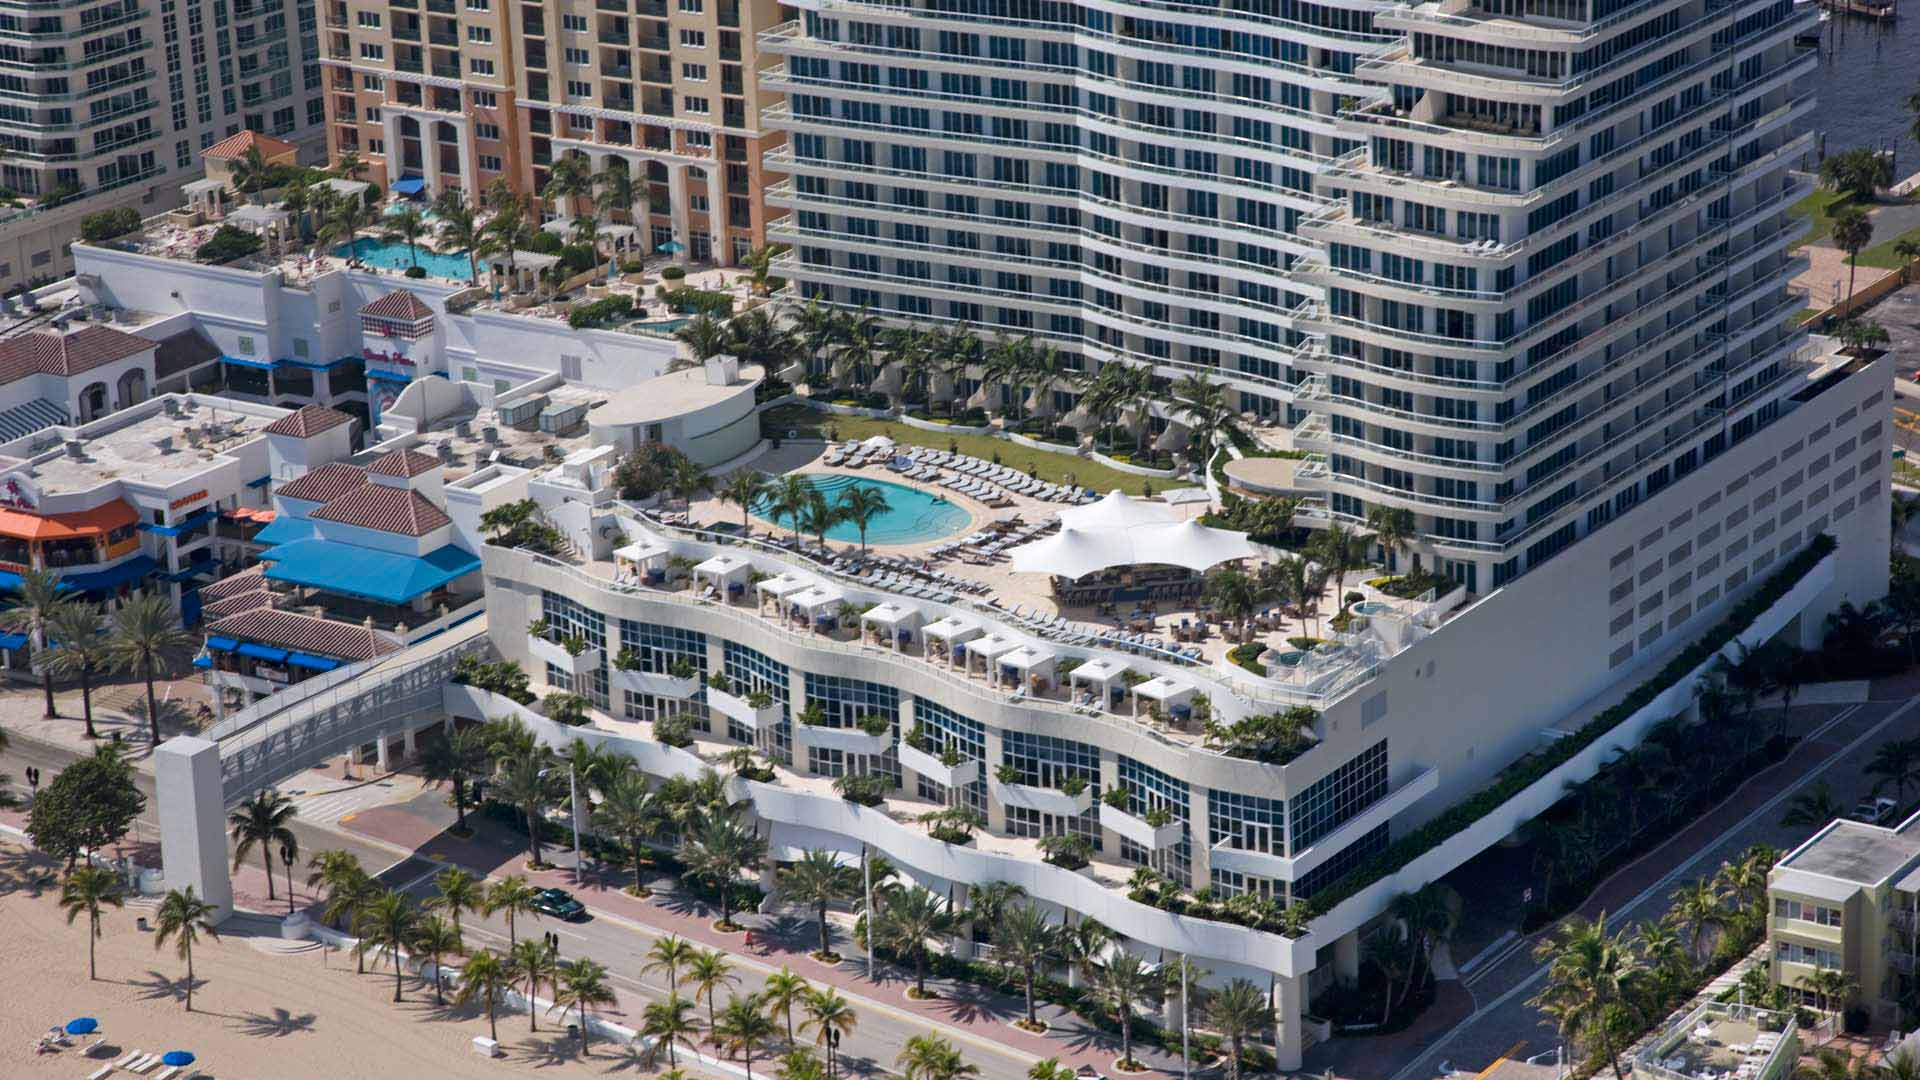 Ritz-Carlton Condos - Fort Lauderdale, FL Condos for Sale